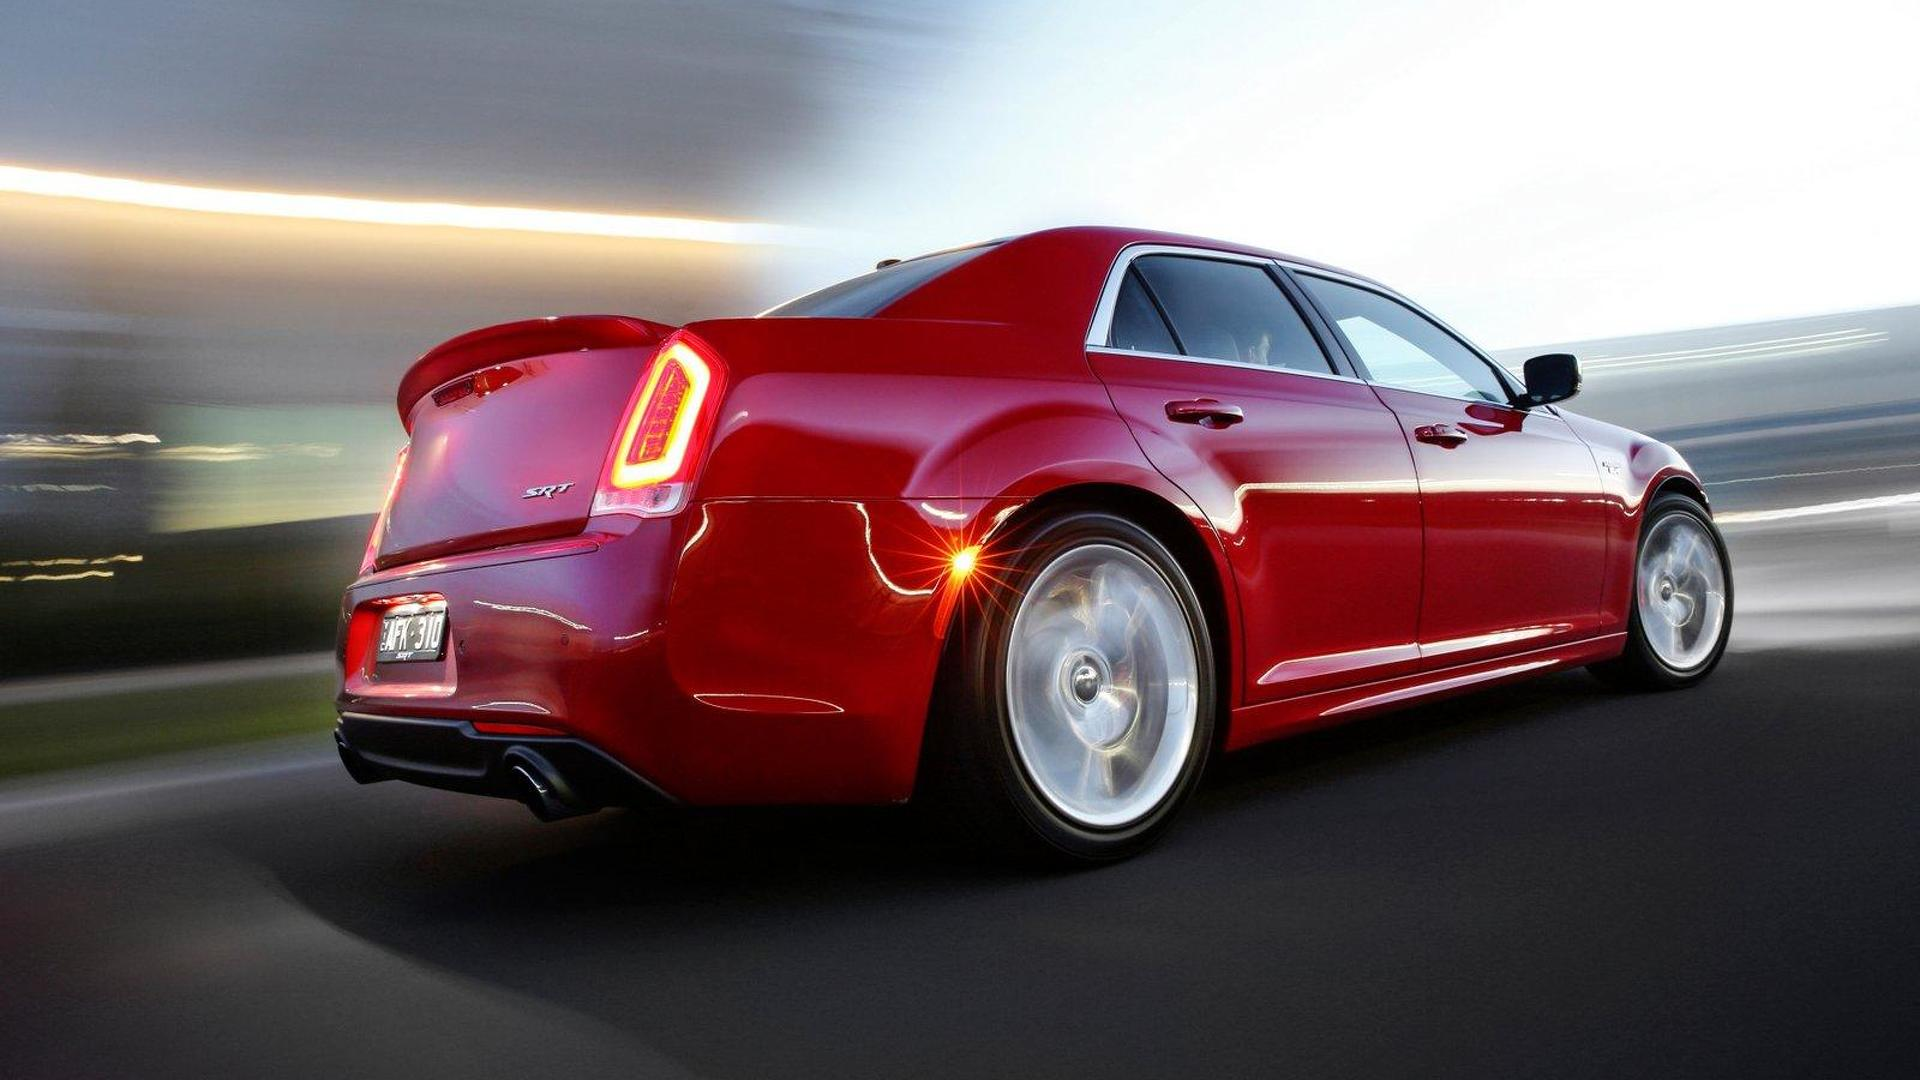 mods for version click views car with chrysler over image supercharged sell forum s img srt sale f a larger name buy in size forums